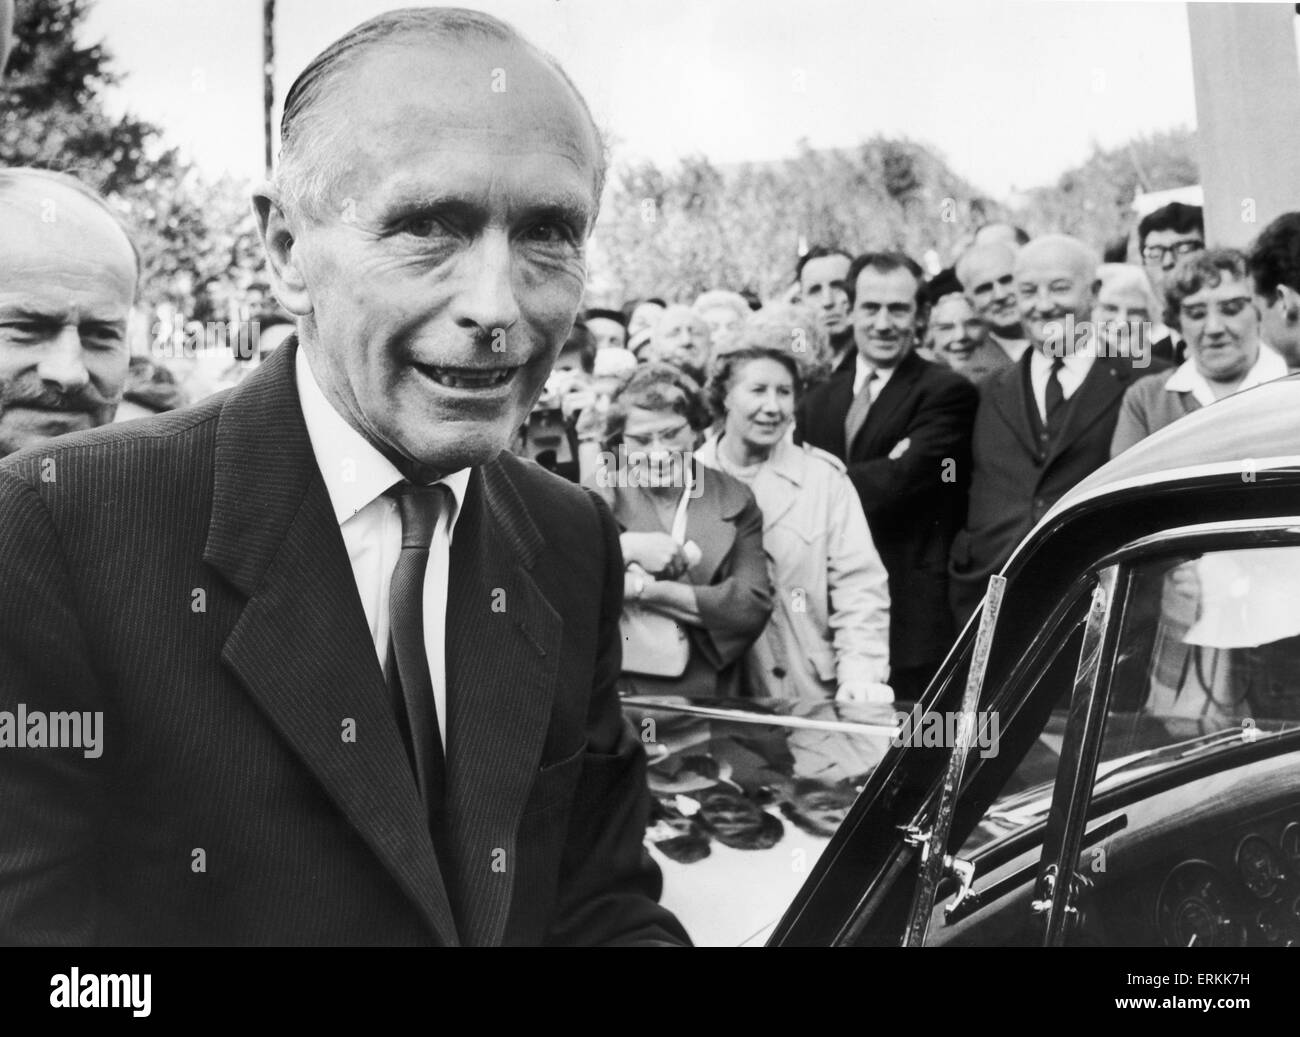 Sir Alec Douglas Home seen here on a whistle stop tour in London to speak at Wembley South during the General Election - Stock Image